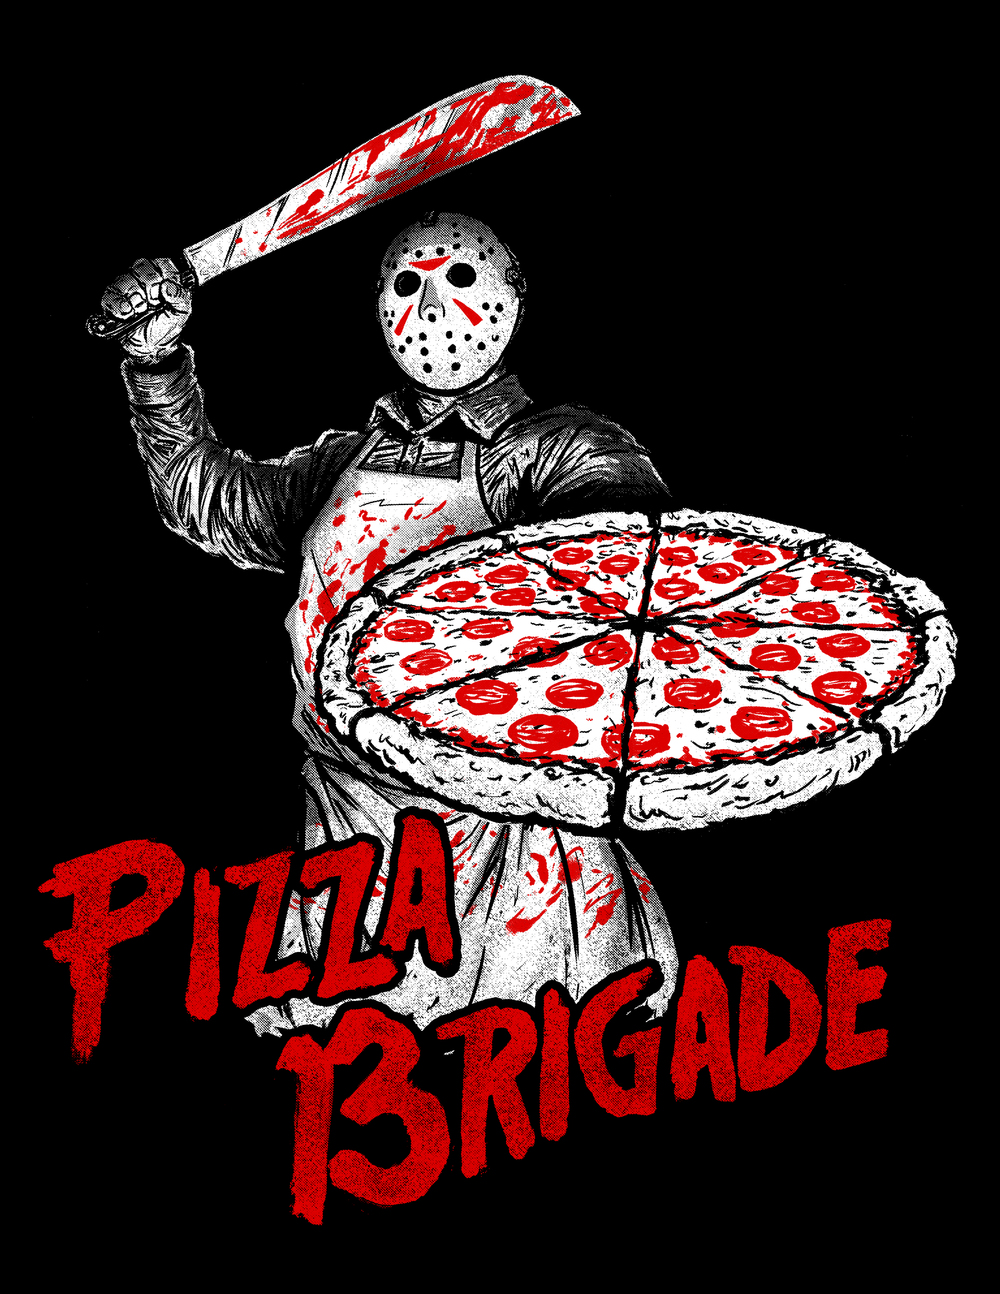 pizza brigade website friday the 13th.jpg